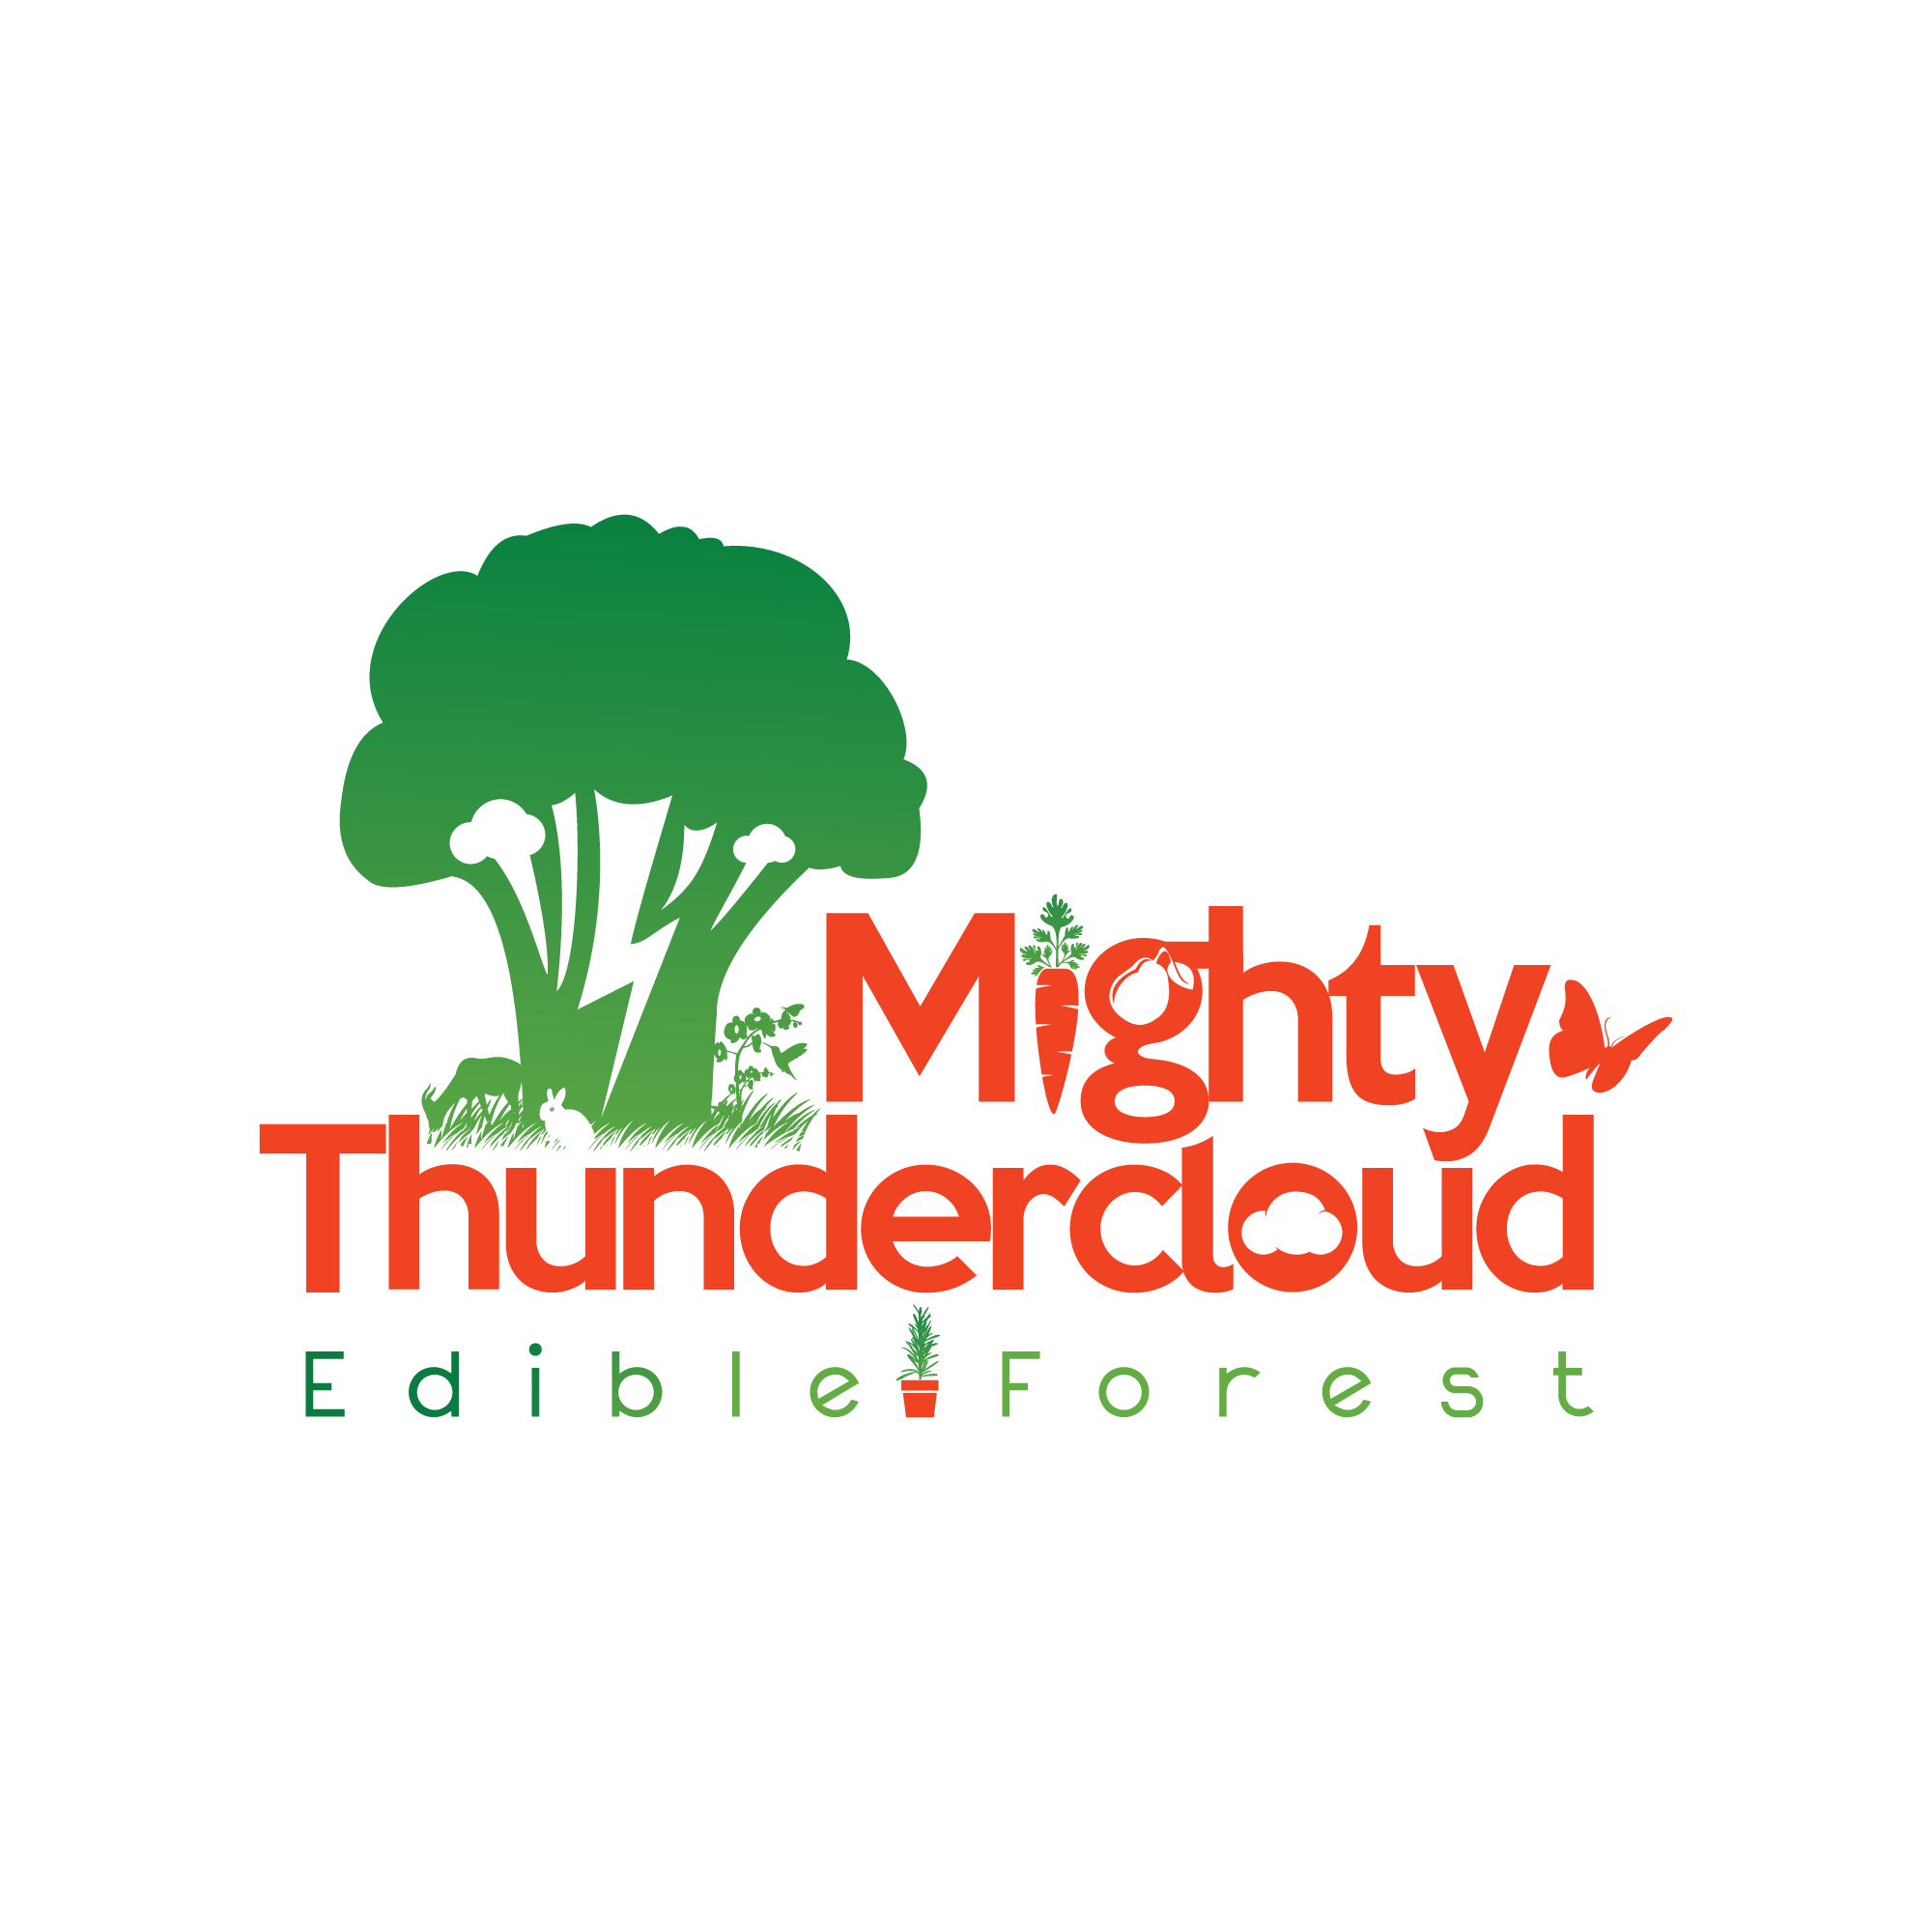 Create the logo that will help improve people and planet for Mighty Thundercloud Edible Forest!